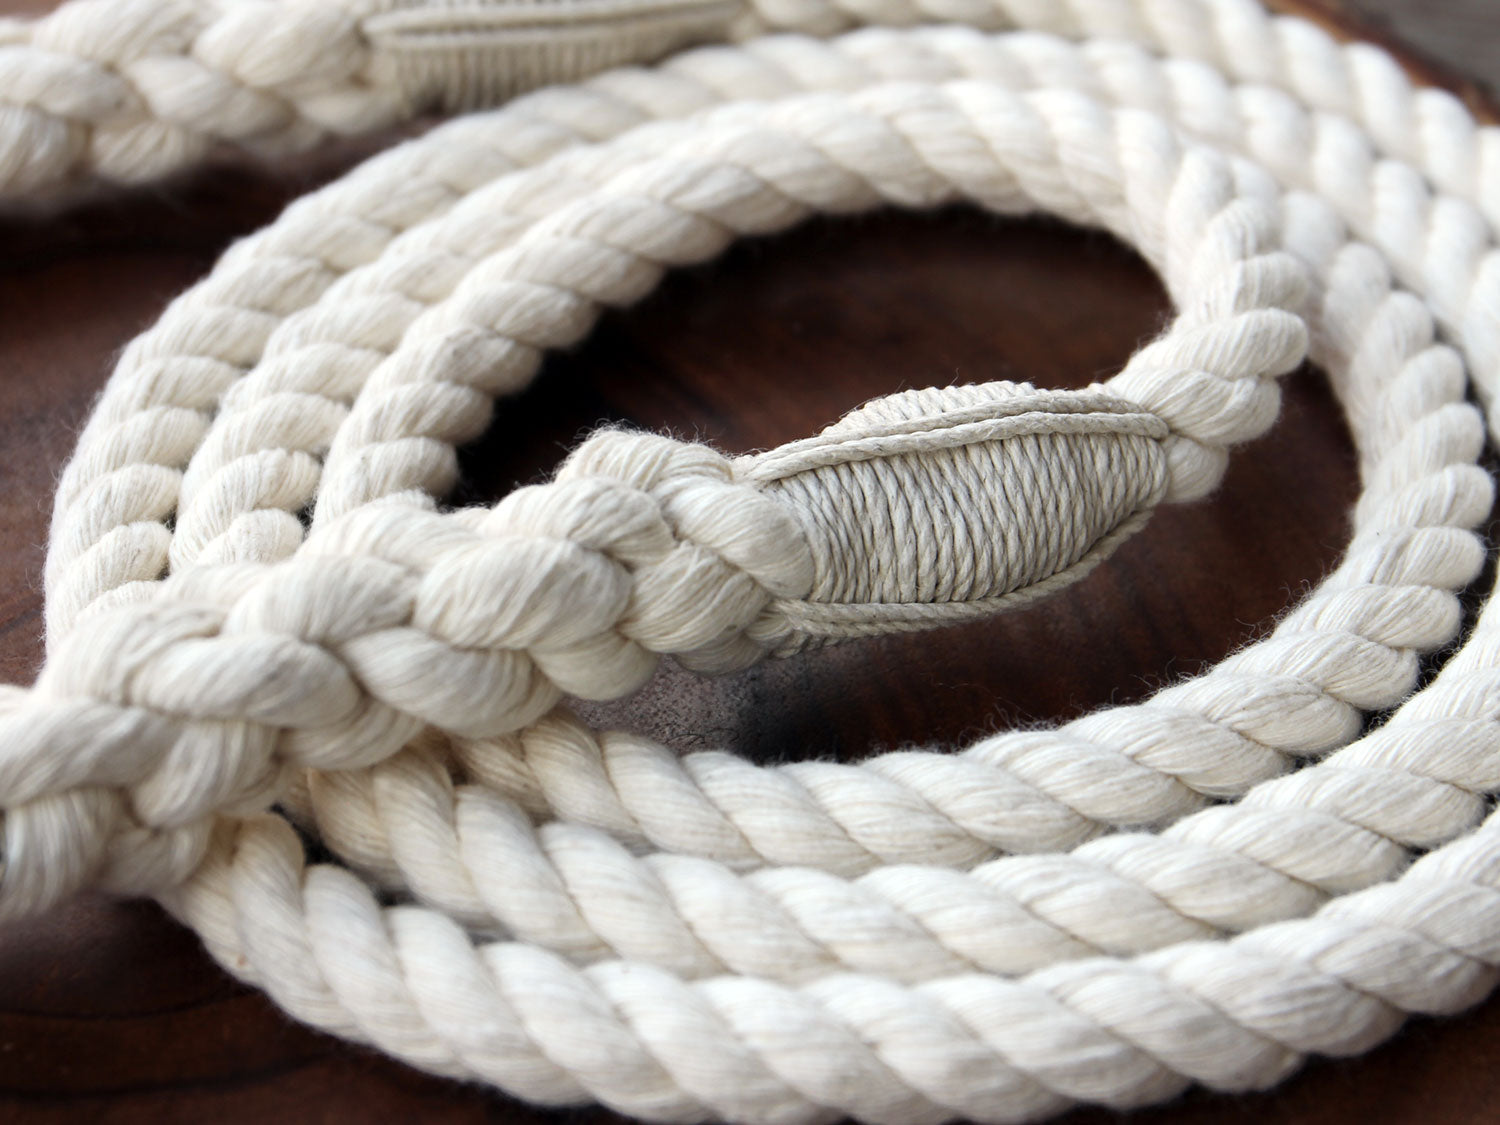 undyed Natural Cotton Rope Leash